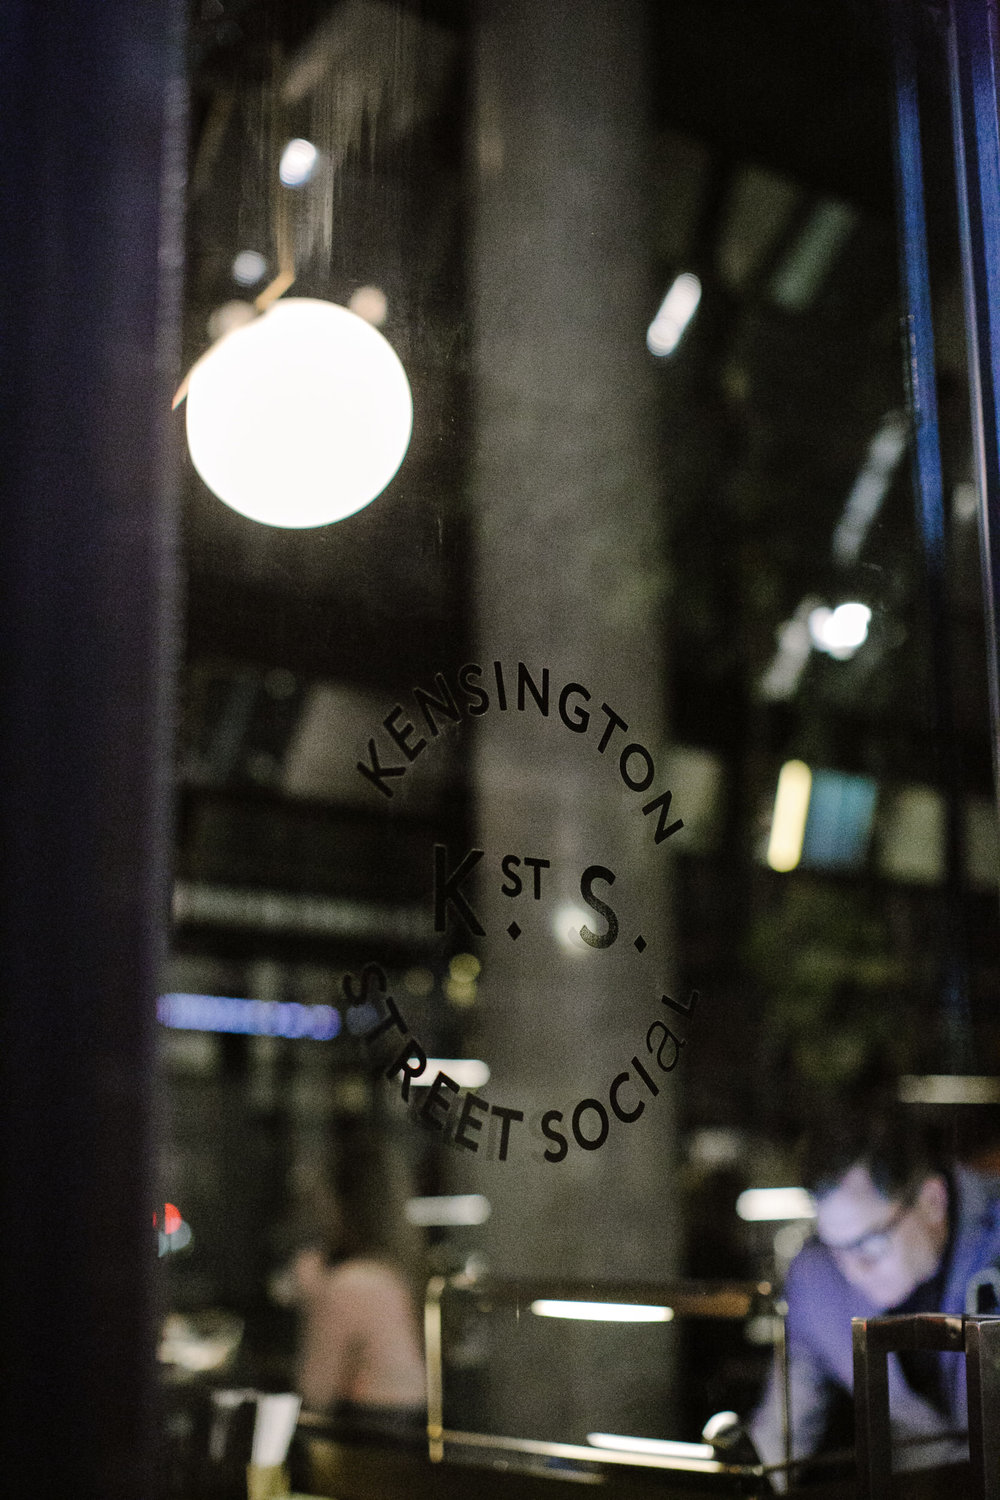 justinaaronphotographer_the_old_clare_kensignton_street_social_st_andrews_cathedral_sydney_alana_chris_b-001-196.jpg